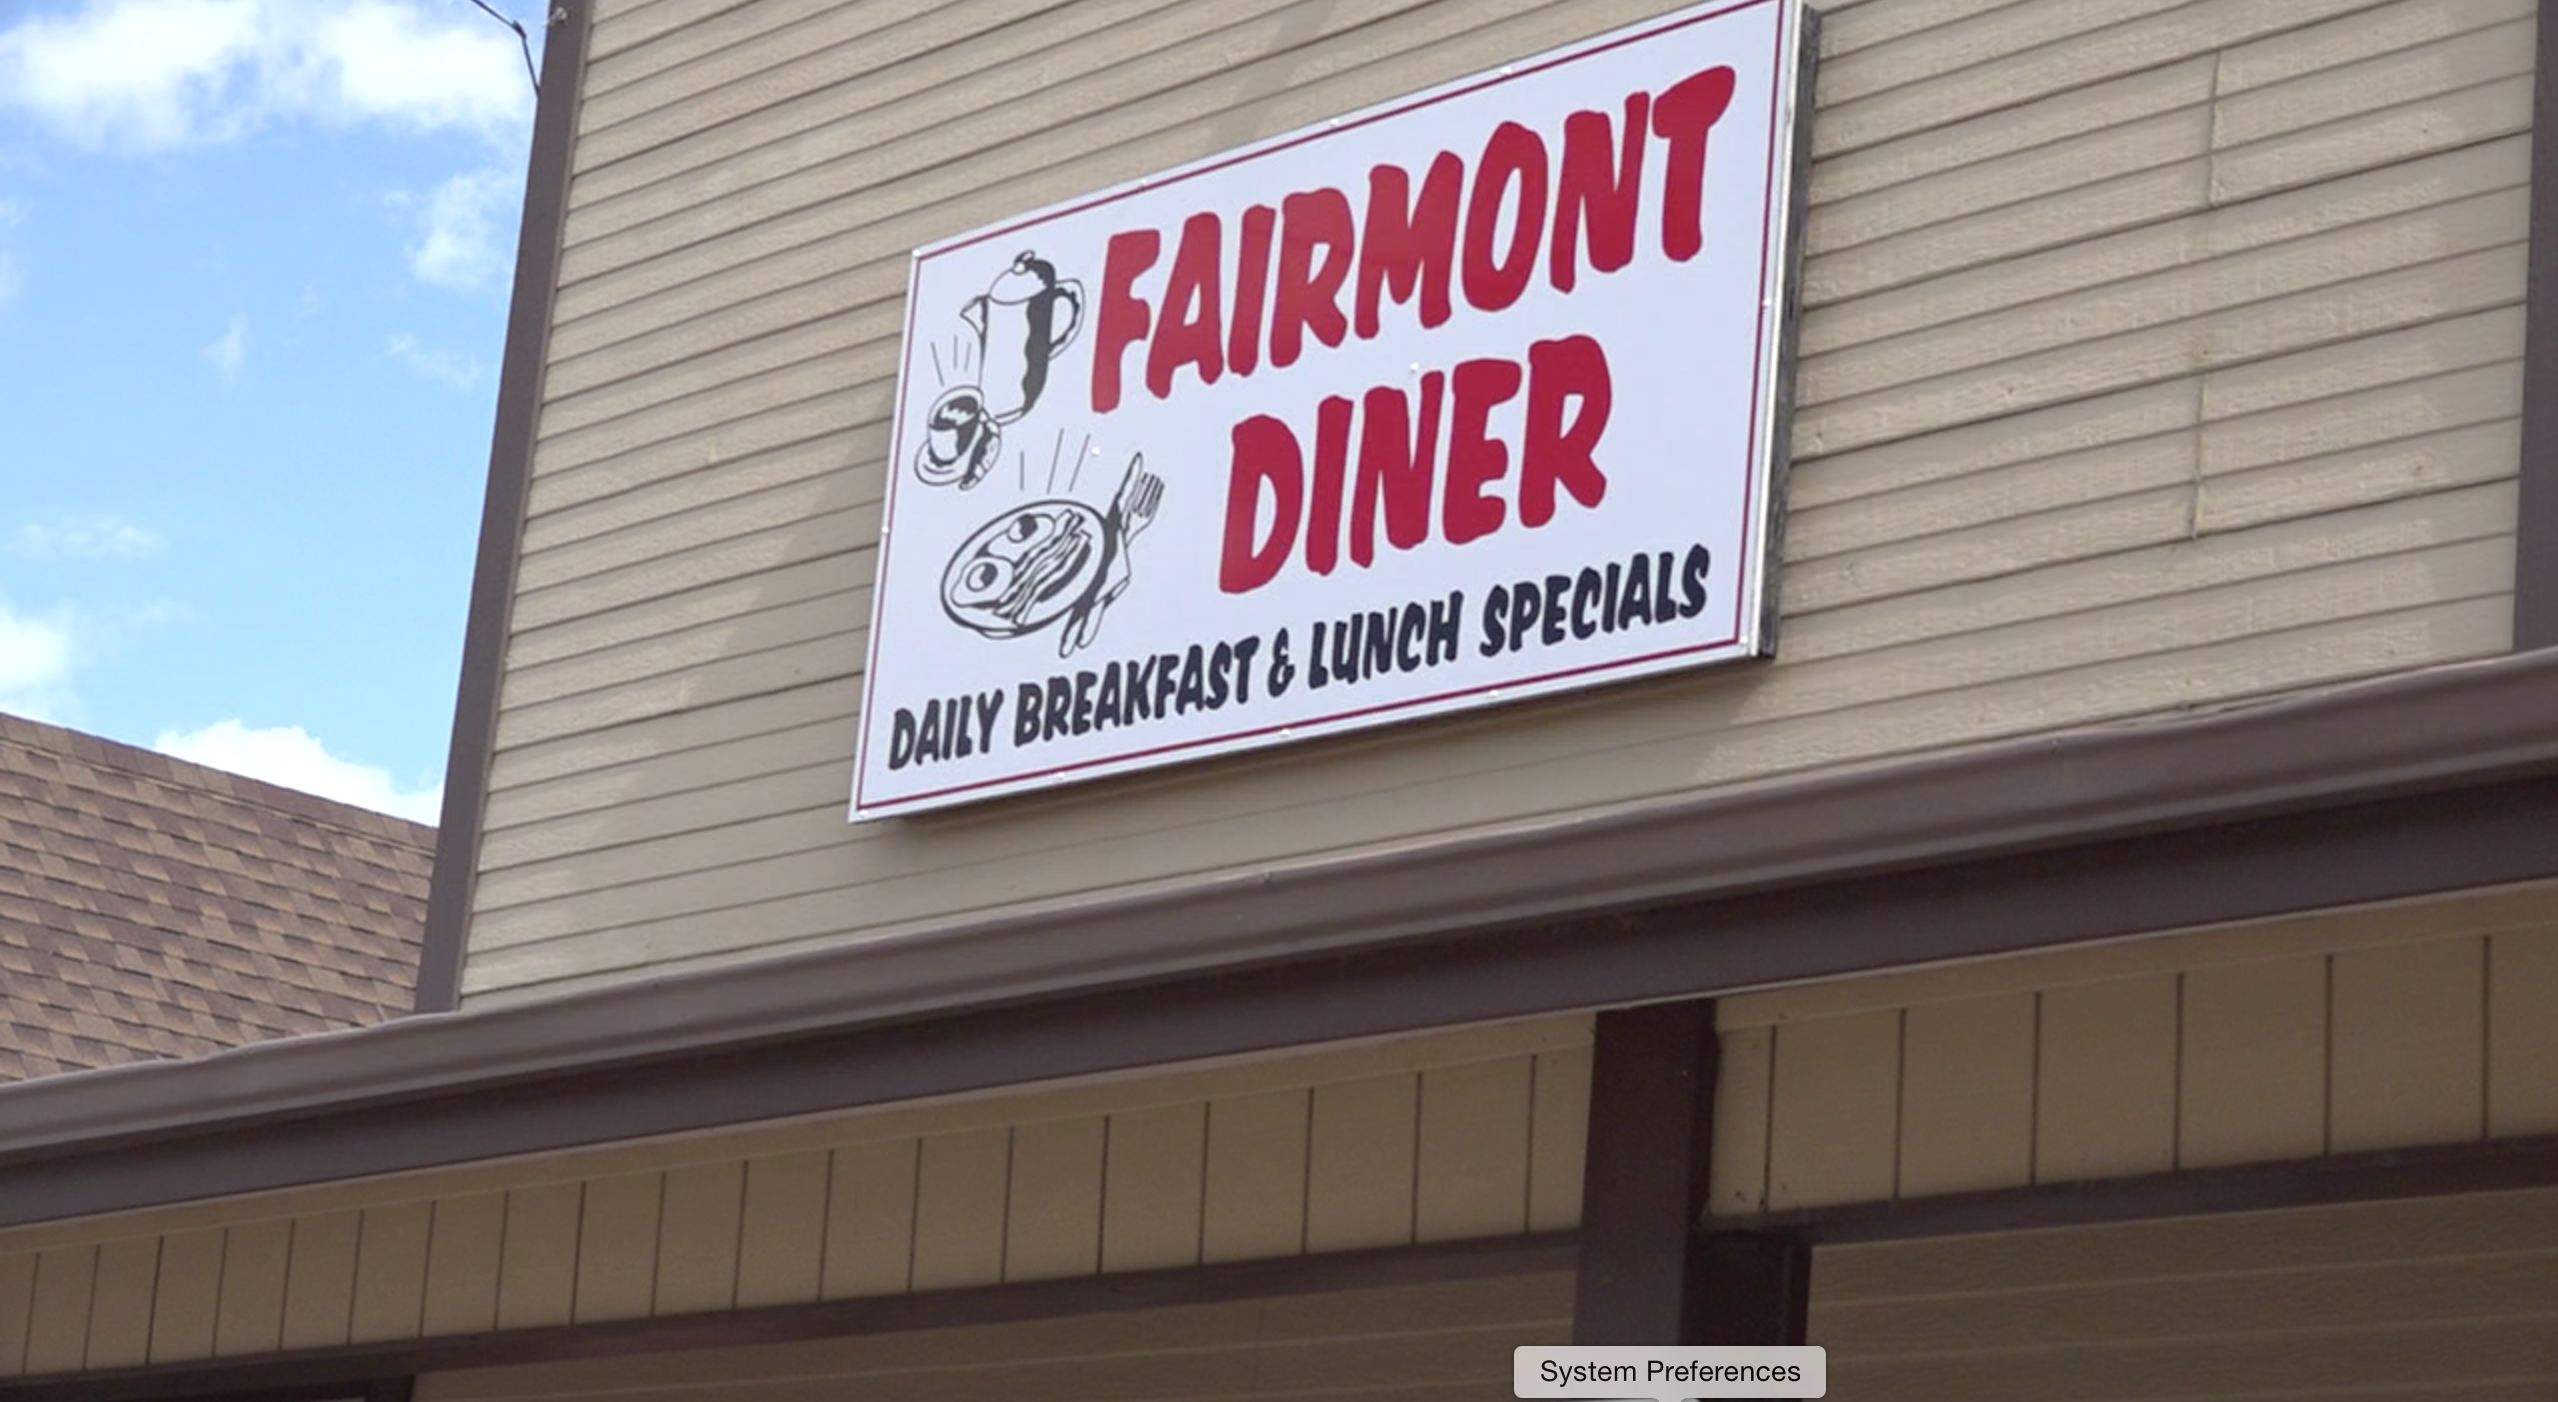 The Fairmont Diner is open for dine-in seating